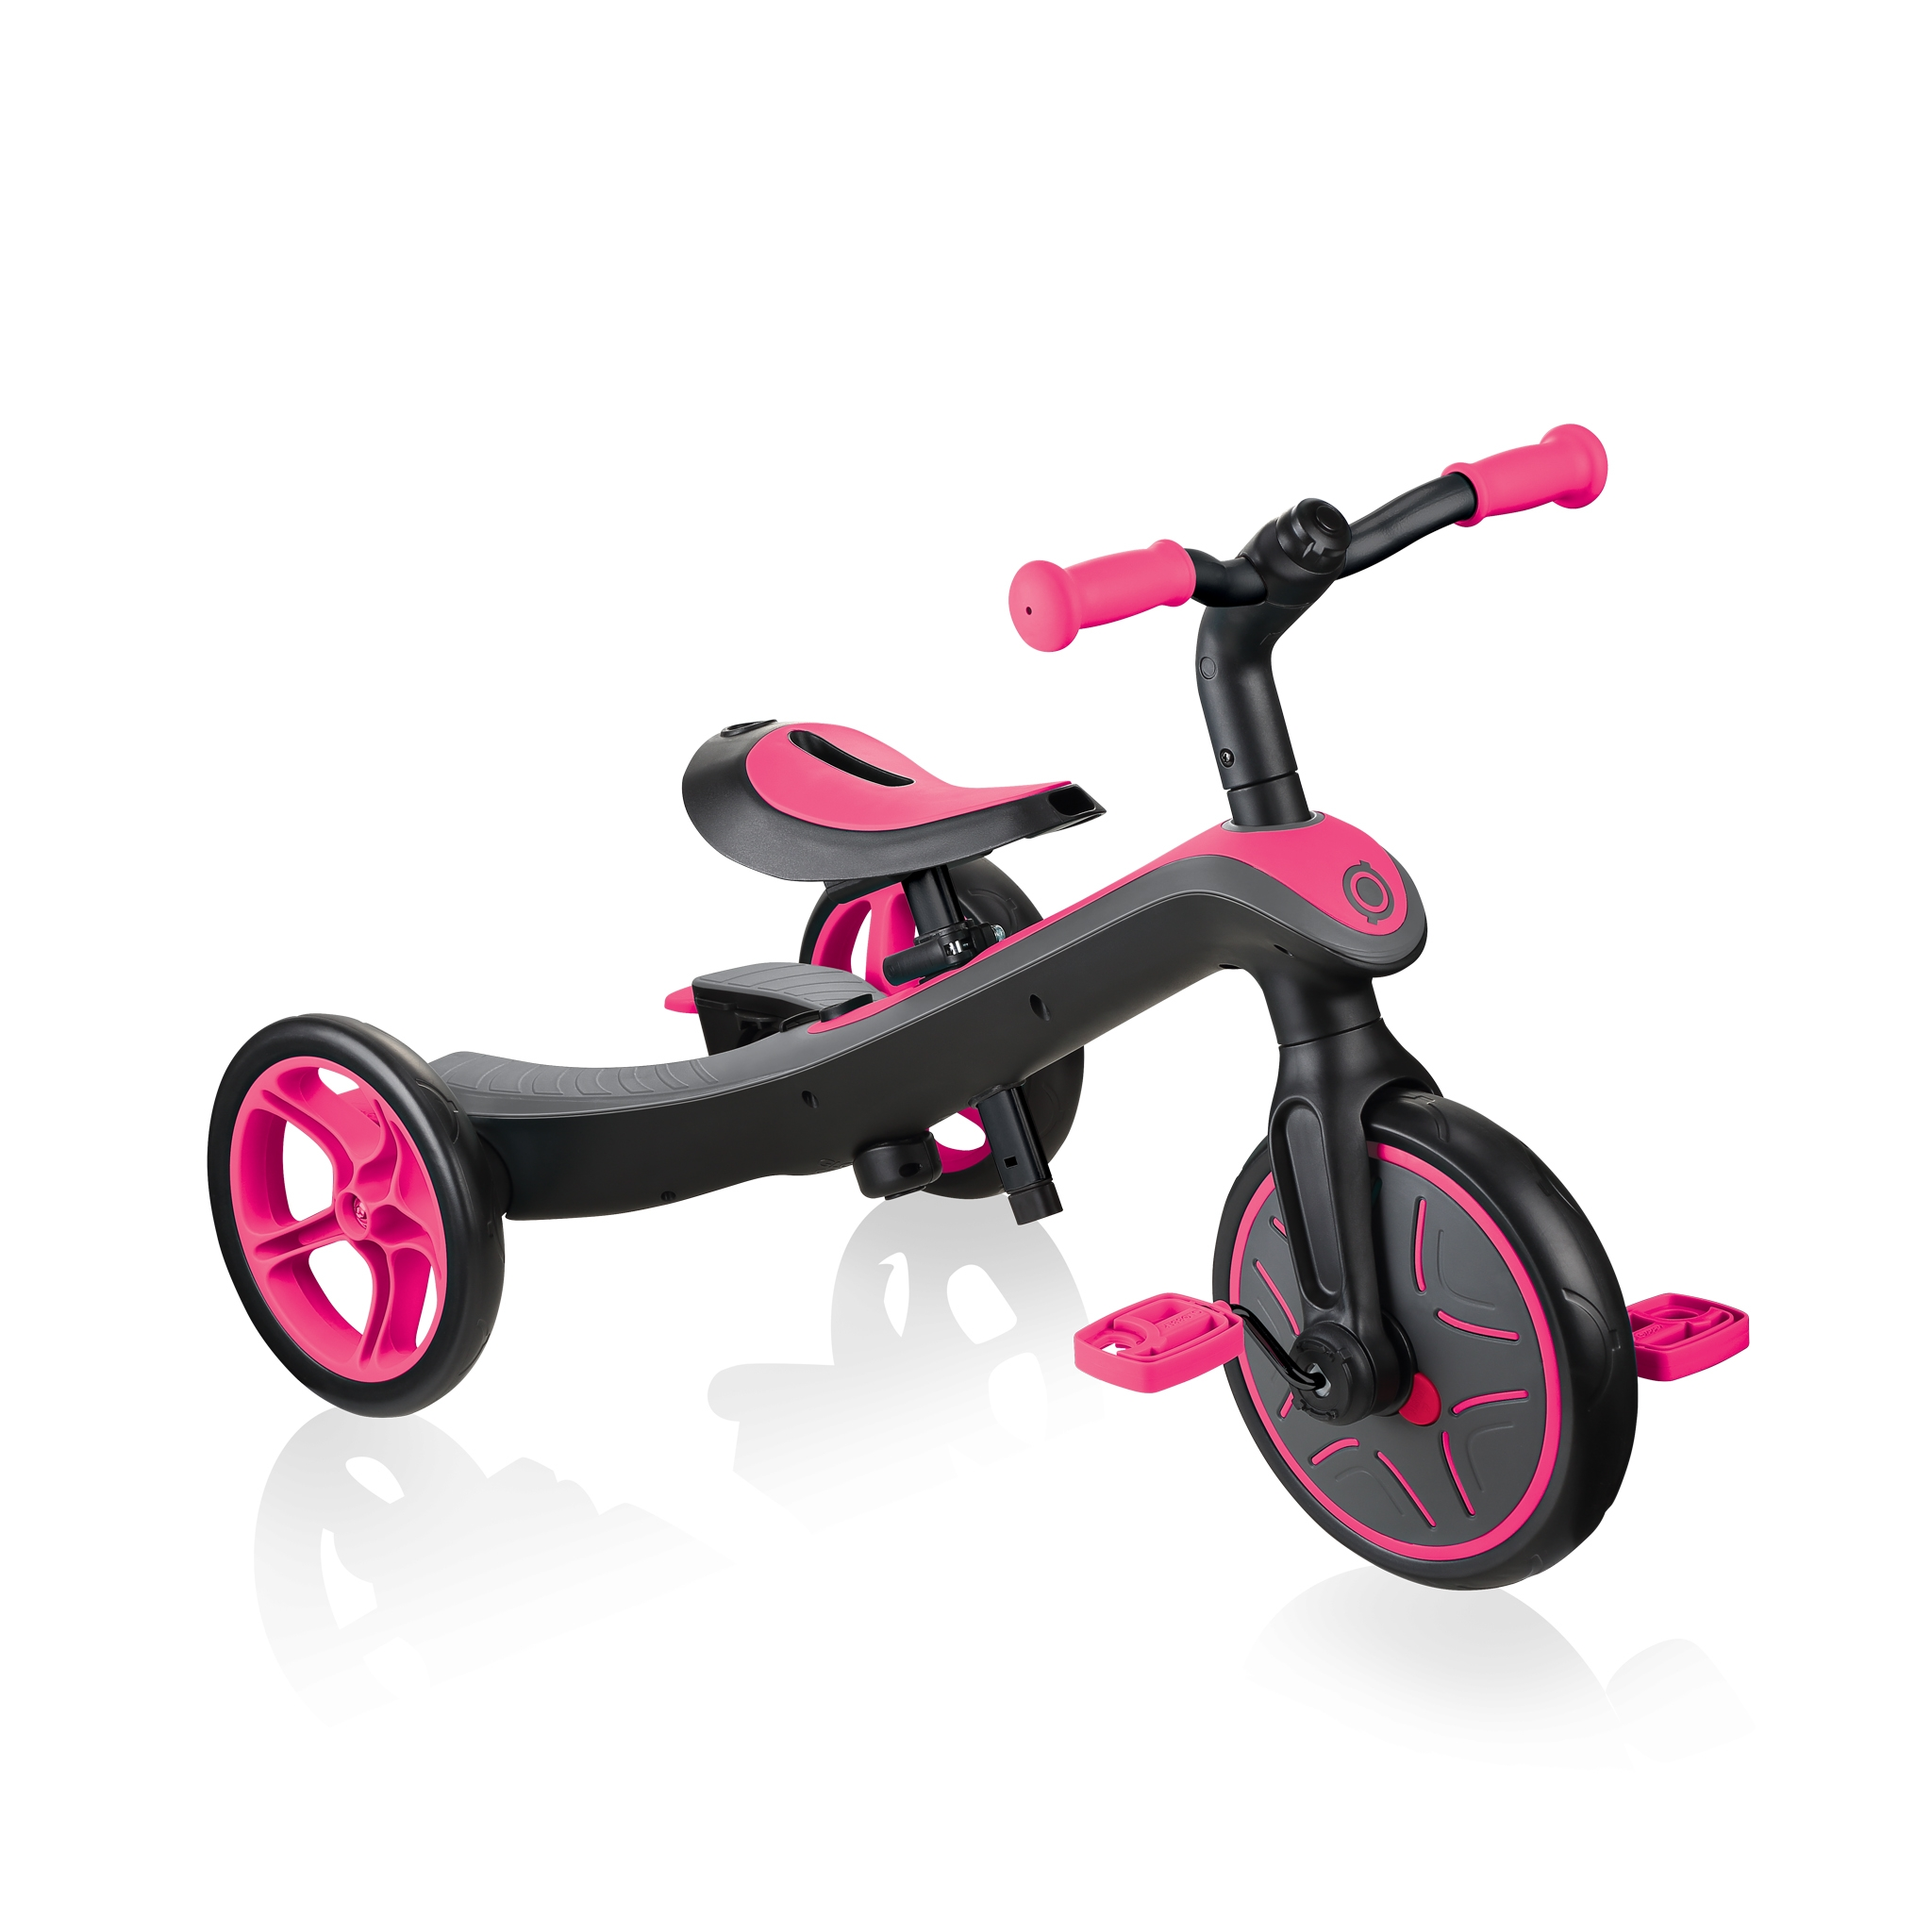 Globber-EXPLORER-TRIKE-4in1-all-in-one-baby-tricycle-and-kids-balance-bike-stage3-training-trike